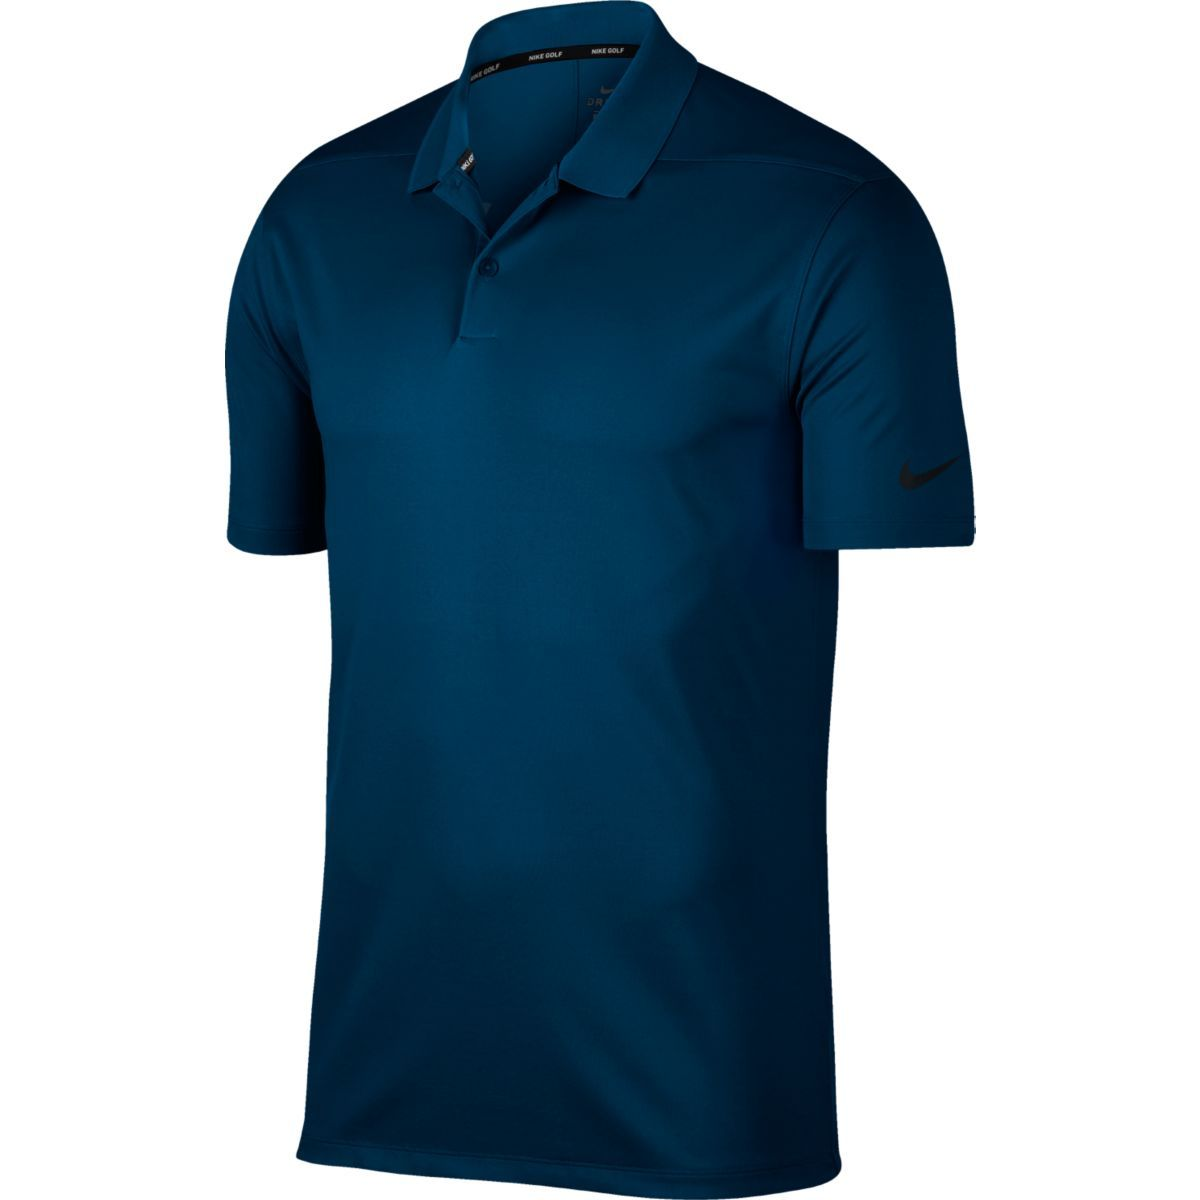 Áo golf nam Nike Men Victory Solid Polo Navy Swoosh Logo Left Chest - 891857-419